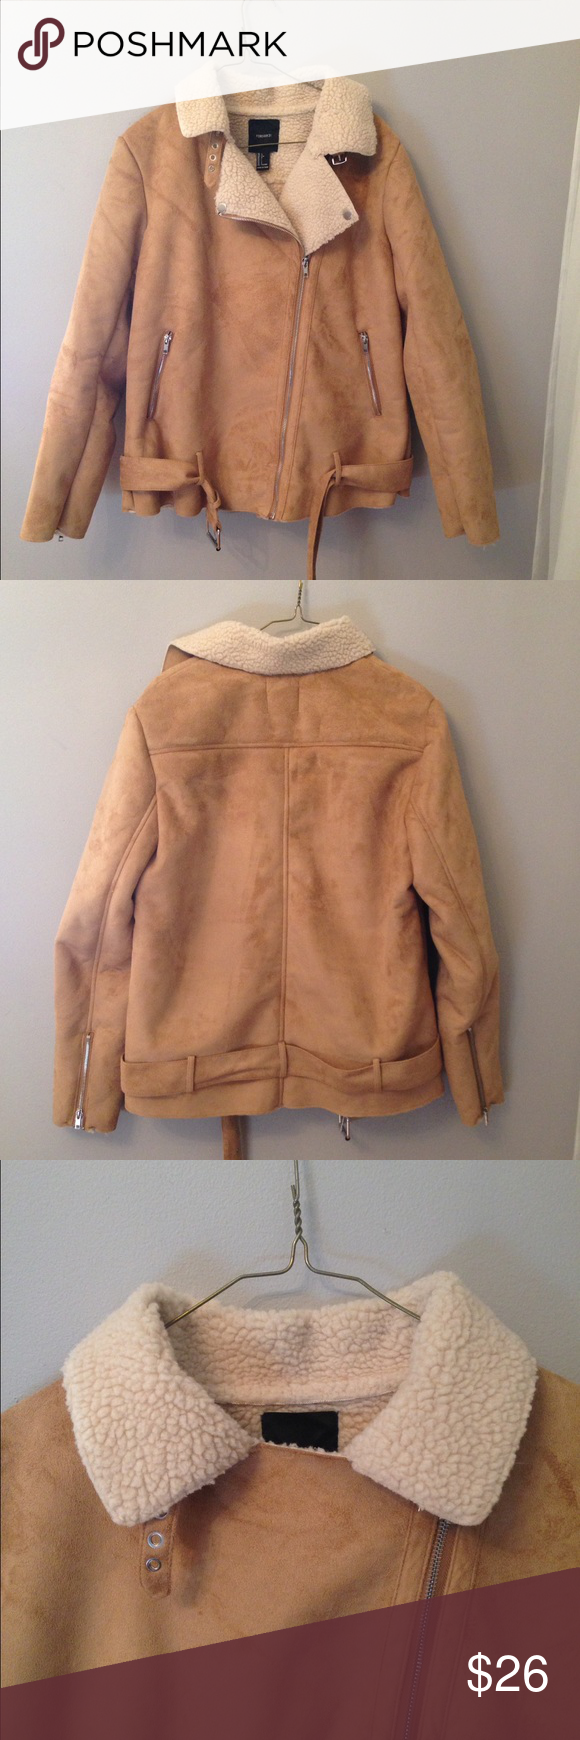 Faux Suede Coat A fully lined, faux suede exterior coat. Zipper pockets, and a cute little buckle around the neck. Comes with a removable belt. Never worn. Forever 21 Jackets & Coats